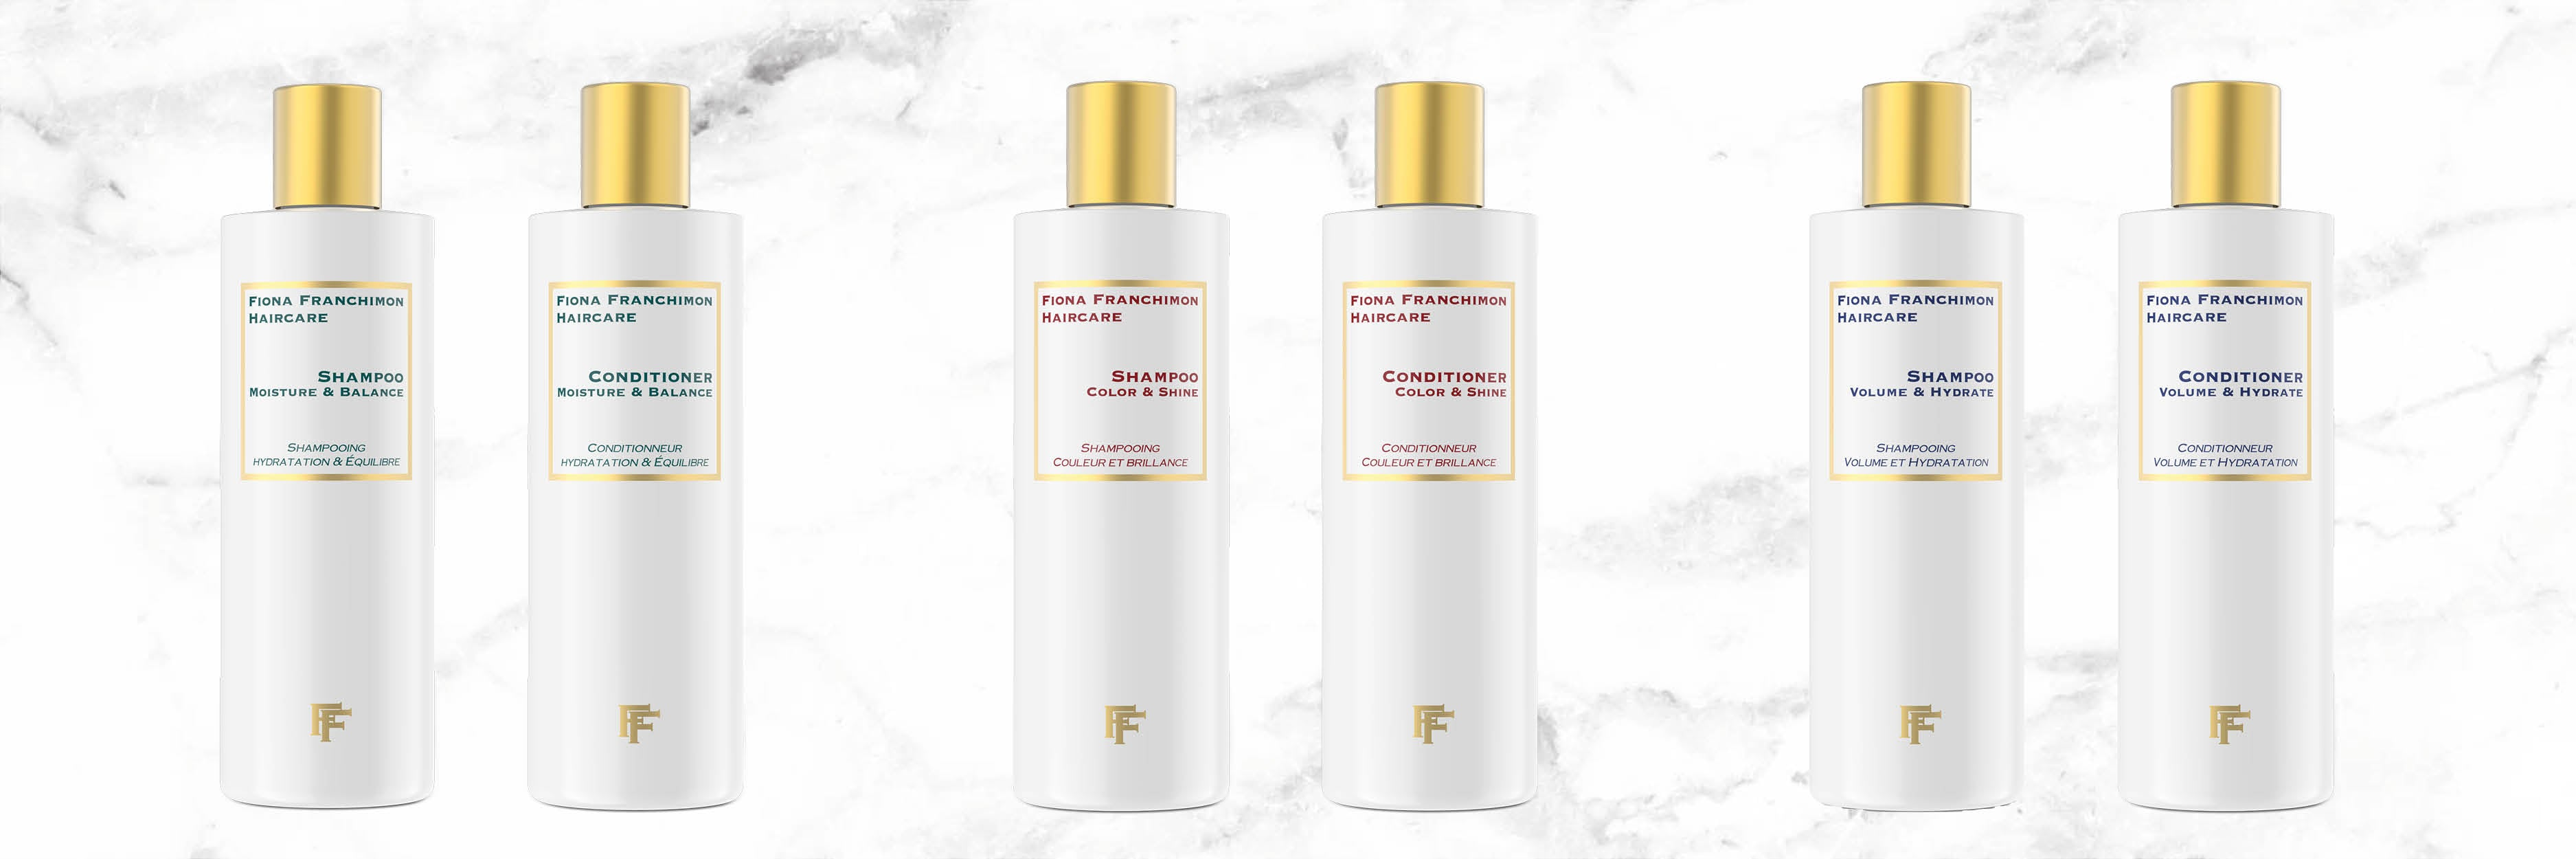 All shampoo and conditioner lines from fiona franchimon haircare